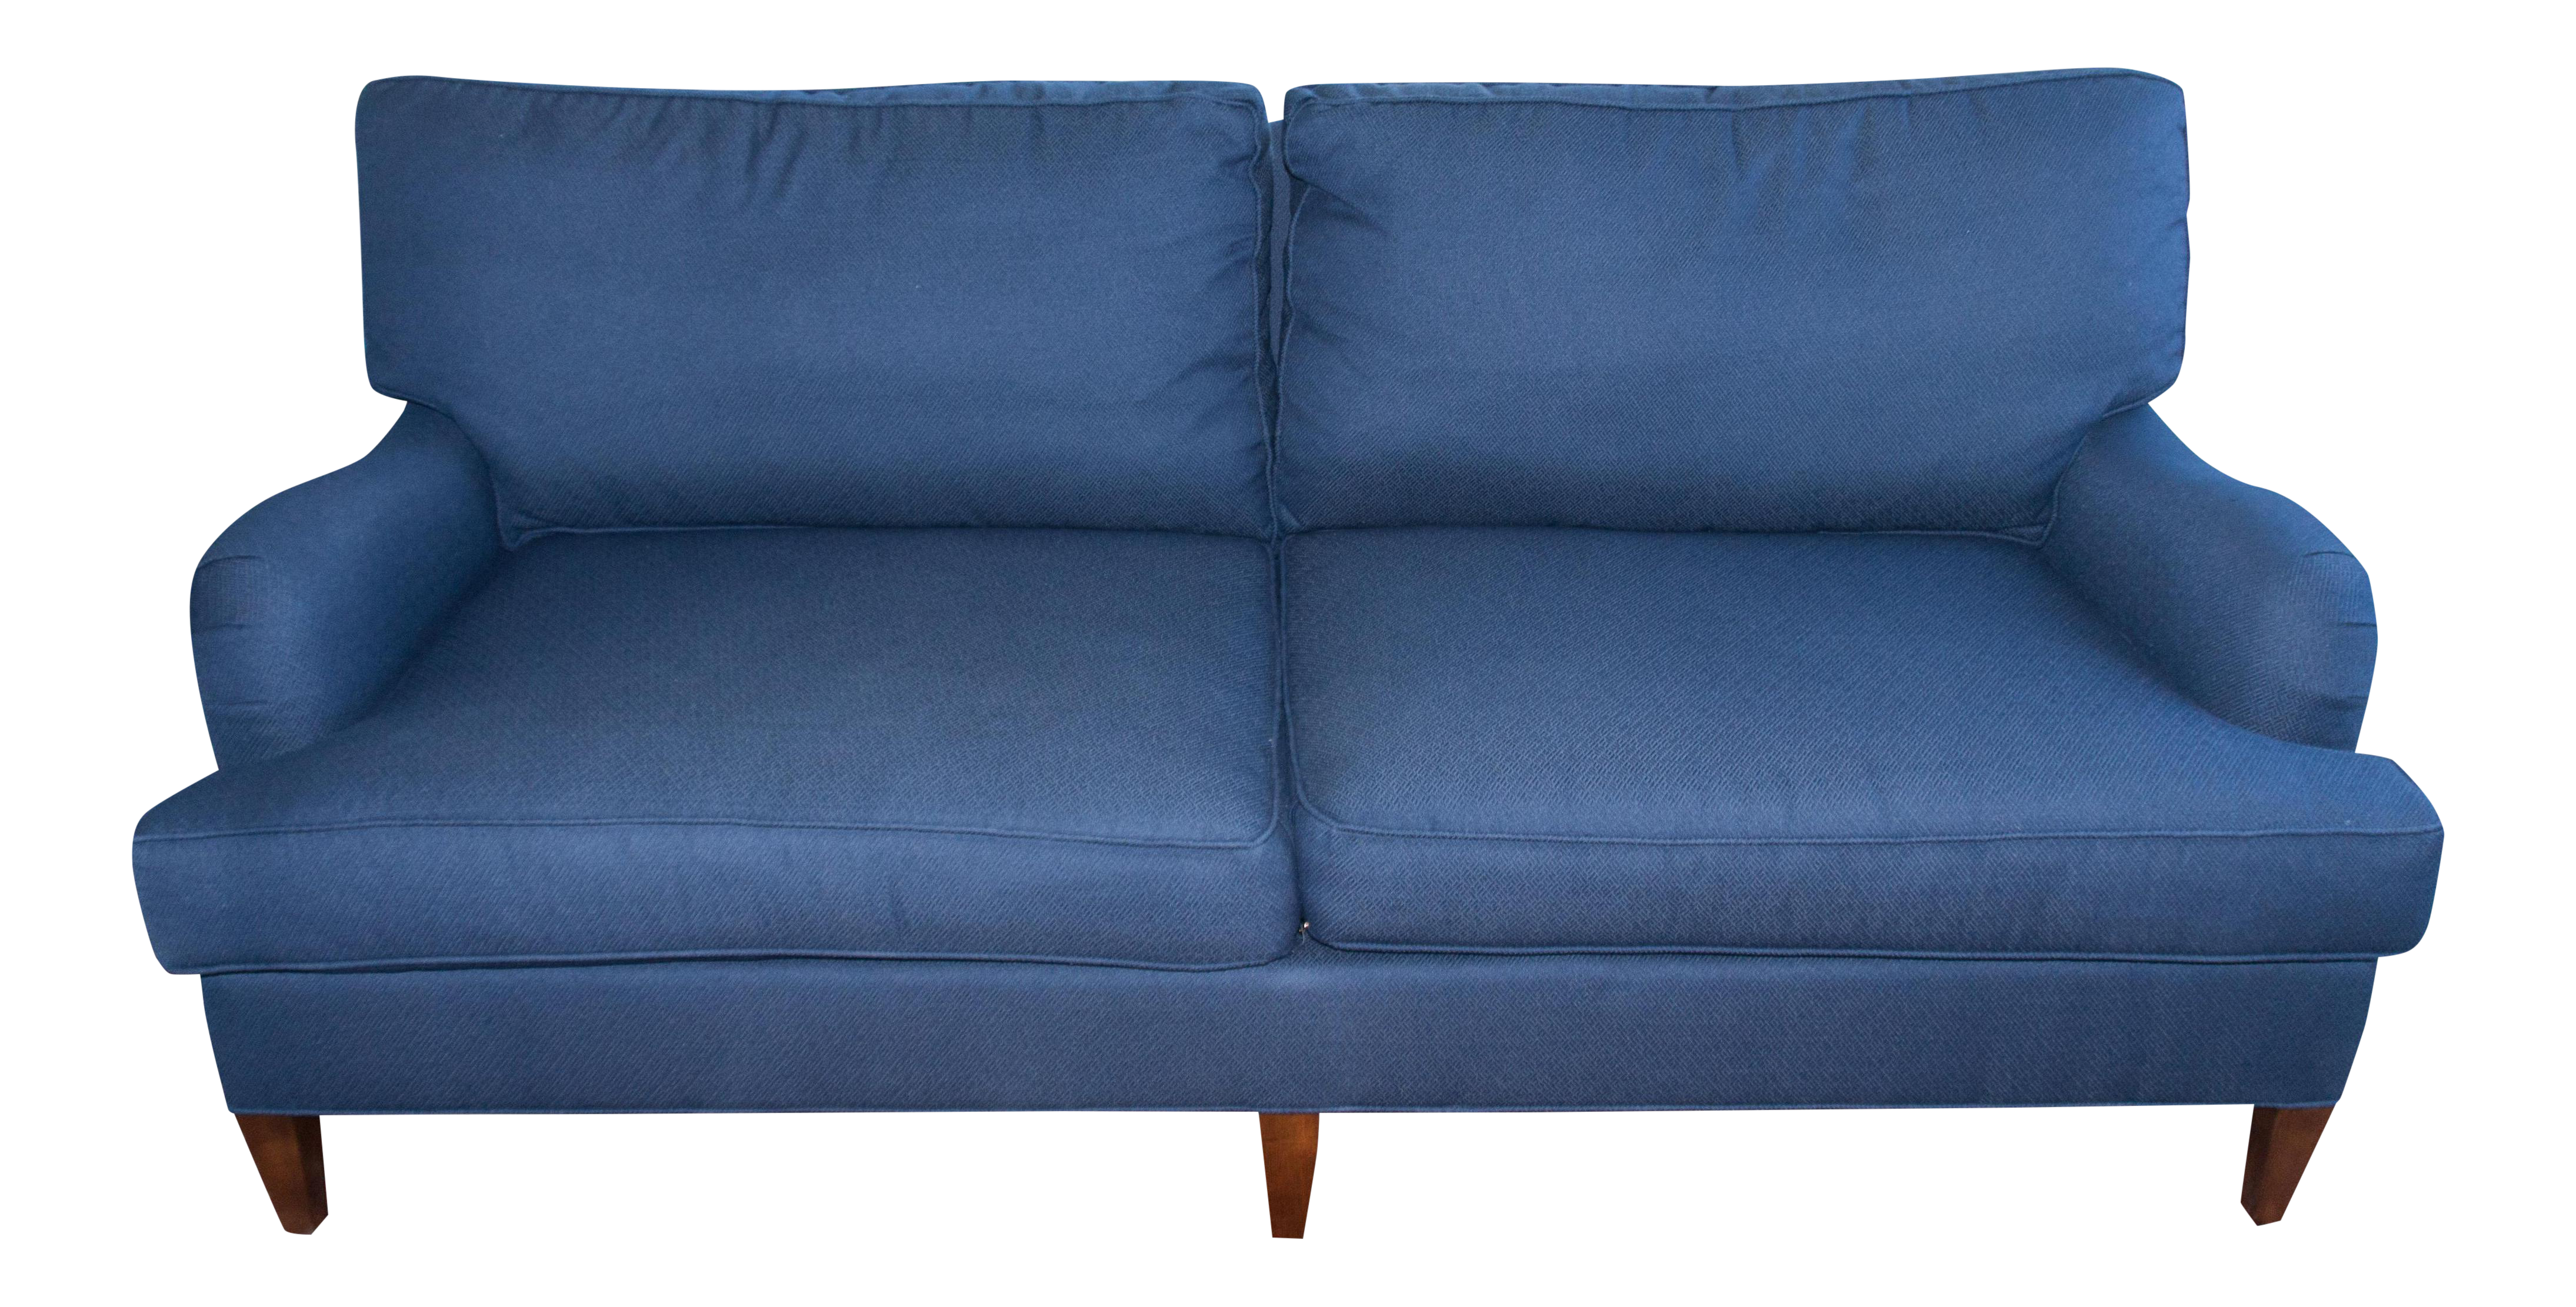 C R Laine Blue Custom Couch